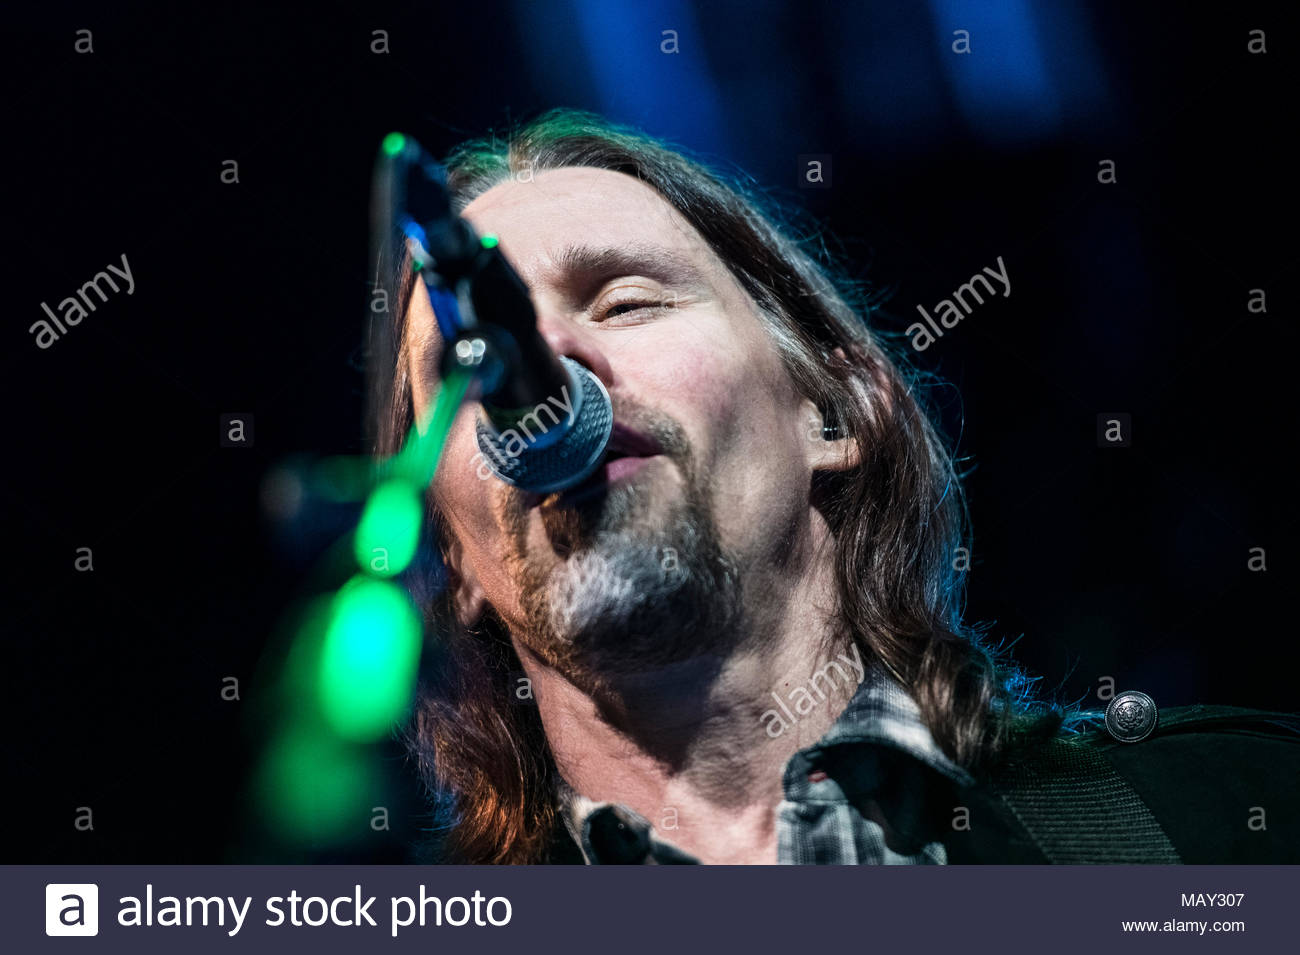 Myles Kennedy live on stage at Magazzini Generali in Milan, Italy  for his 'Storytelling Solo Tour' on April 4, 2018 © Elena Di Vincenzo - Stock Image